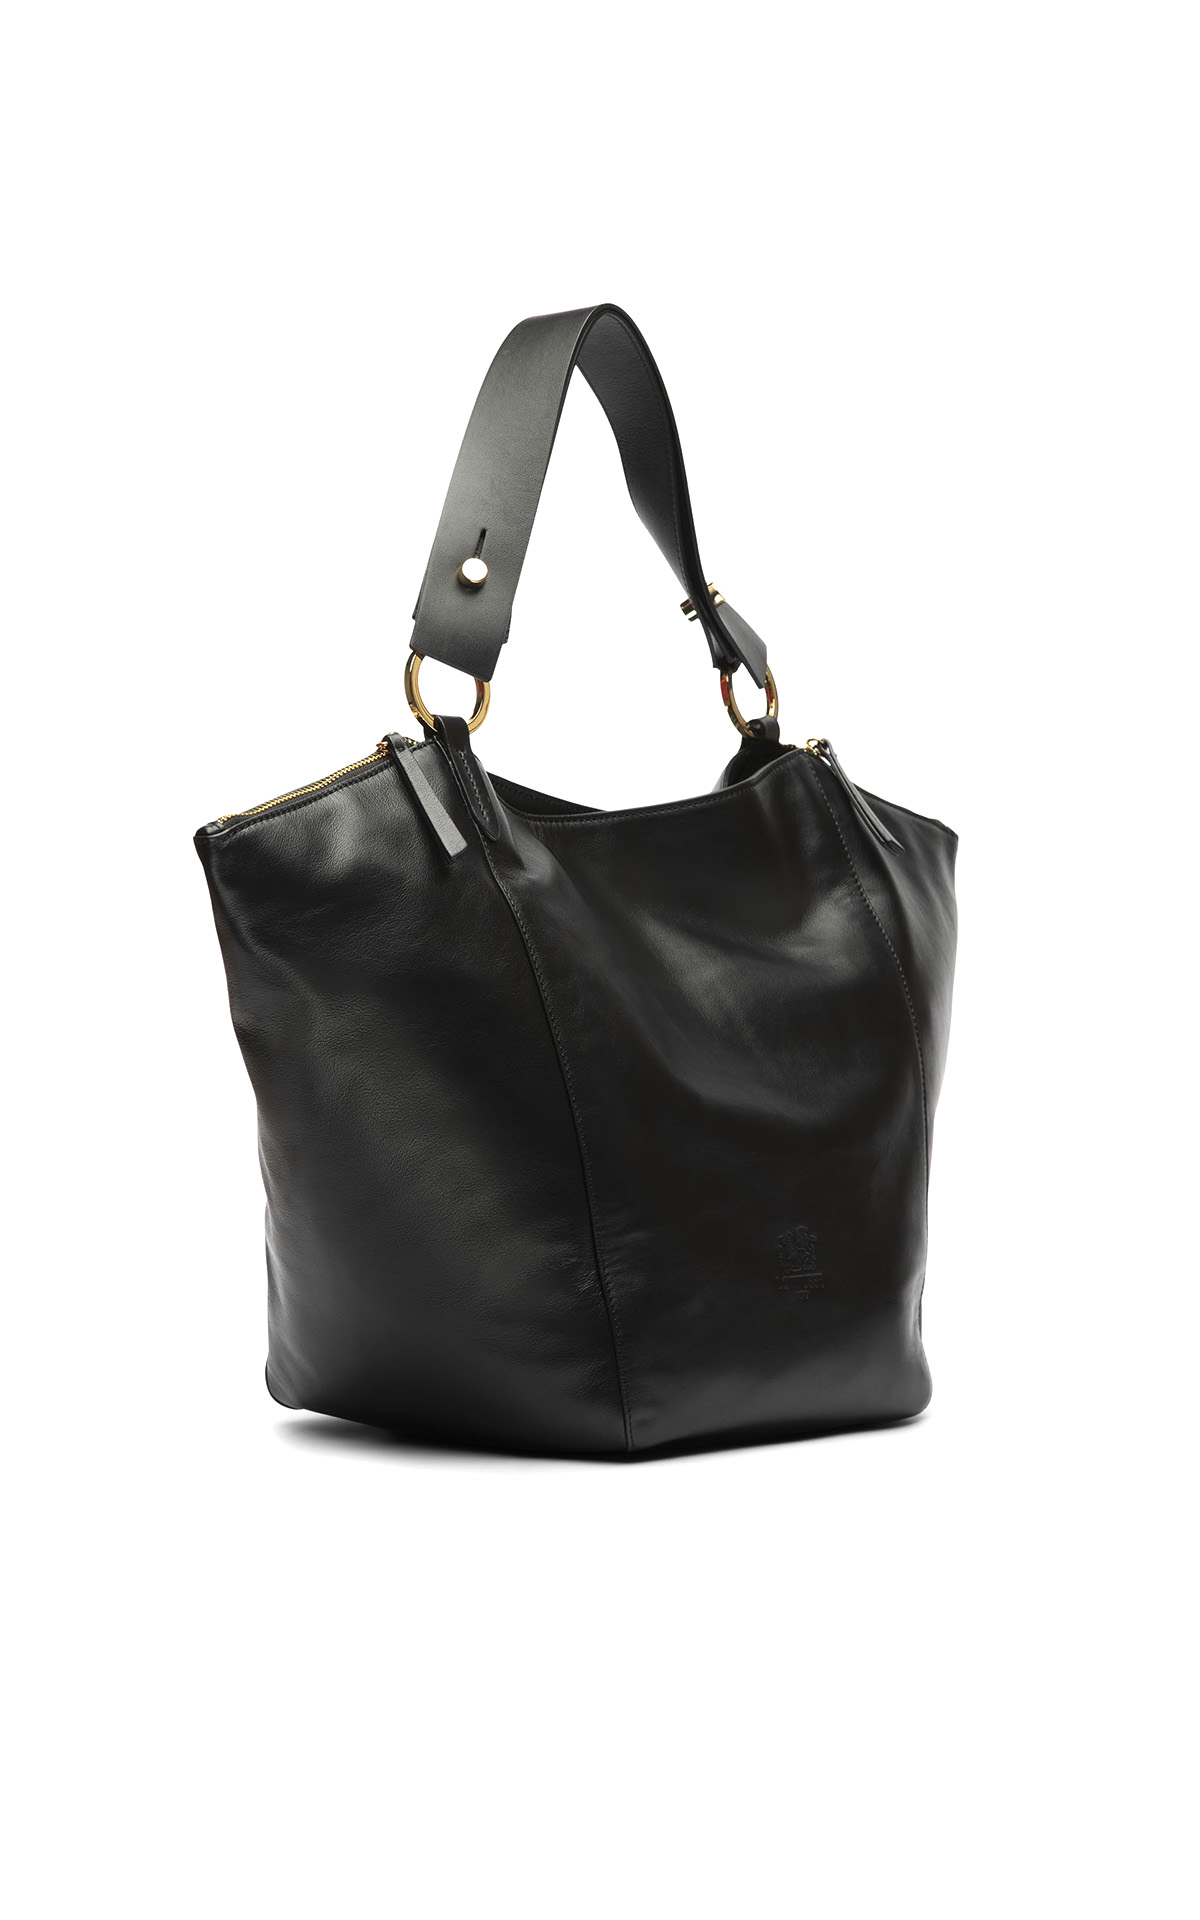 Black leather tote bag Lottusse